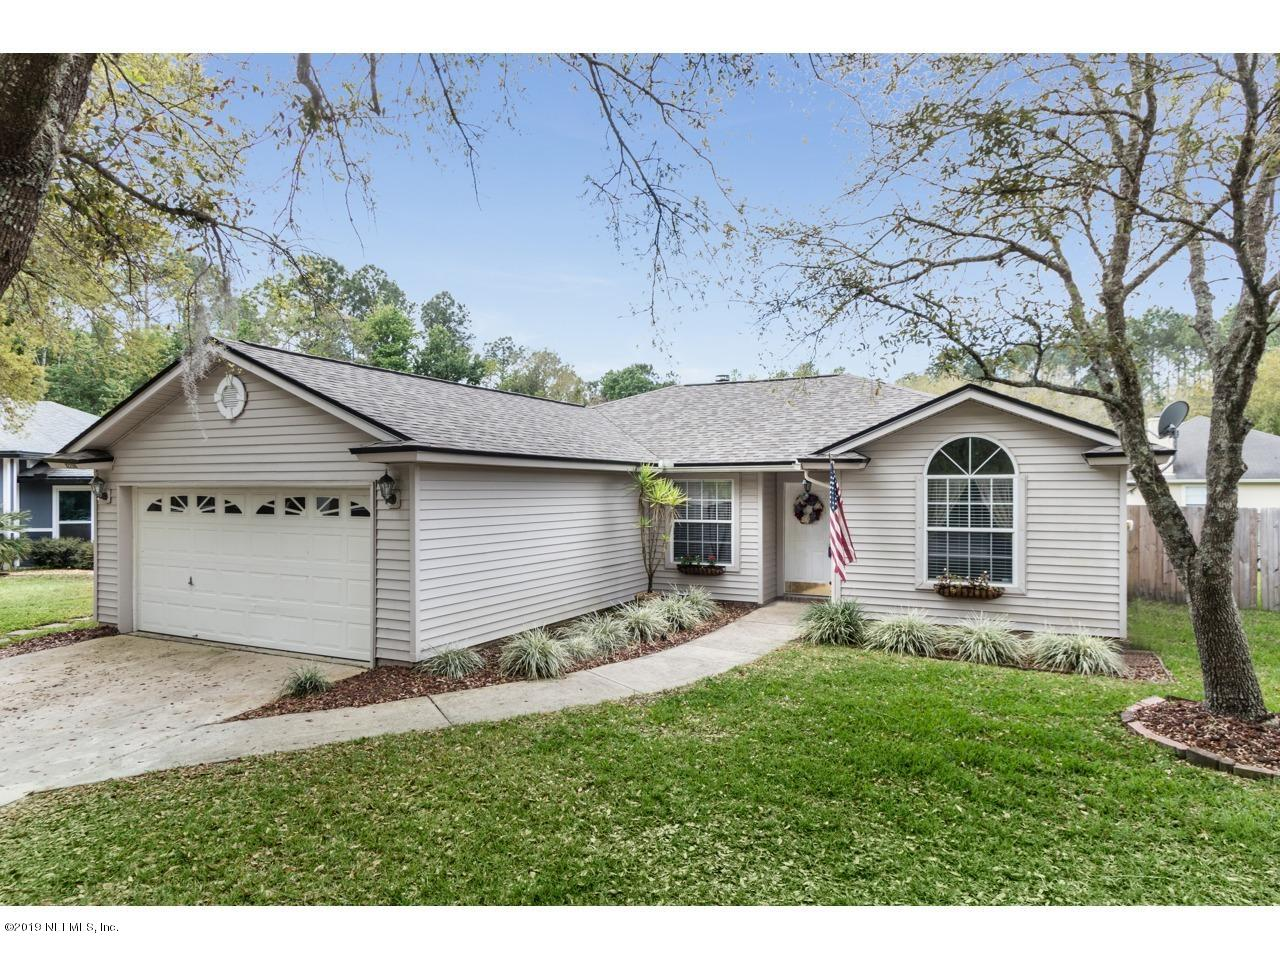 12208 SILVER SADDLE, JACKSONVILLE, FLORIDA 32258, 3 Bedrooms Bedrooms, ,2 BathroomsBathrooms,Residential - single family,For sale,SILVER SADDLE,985614